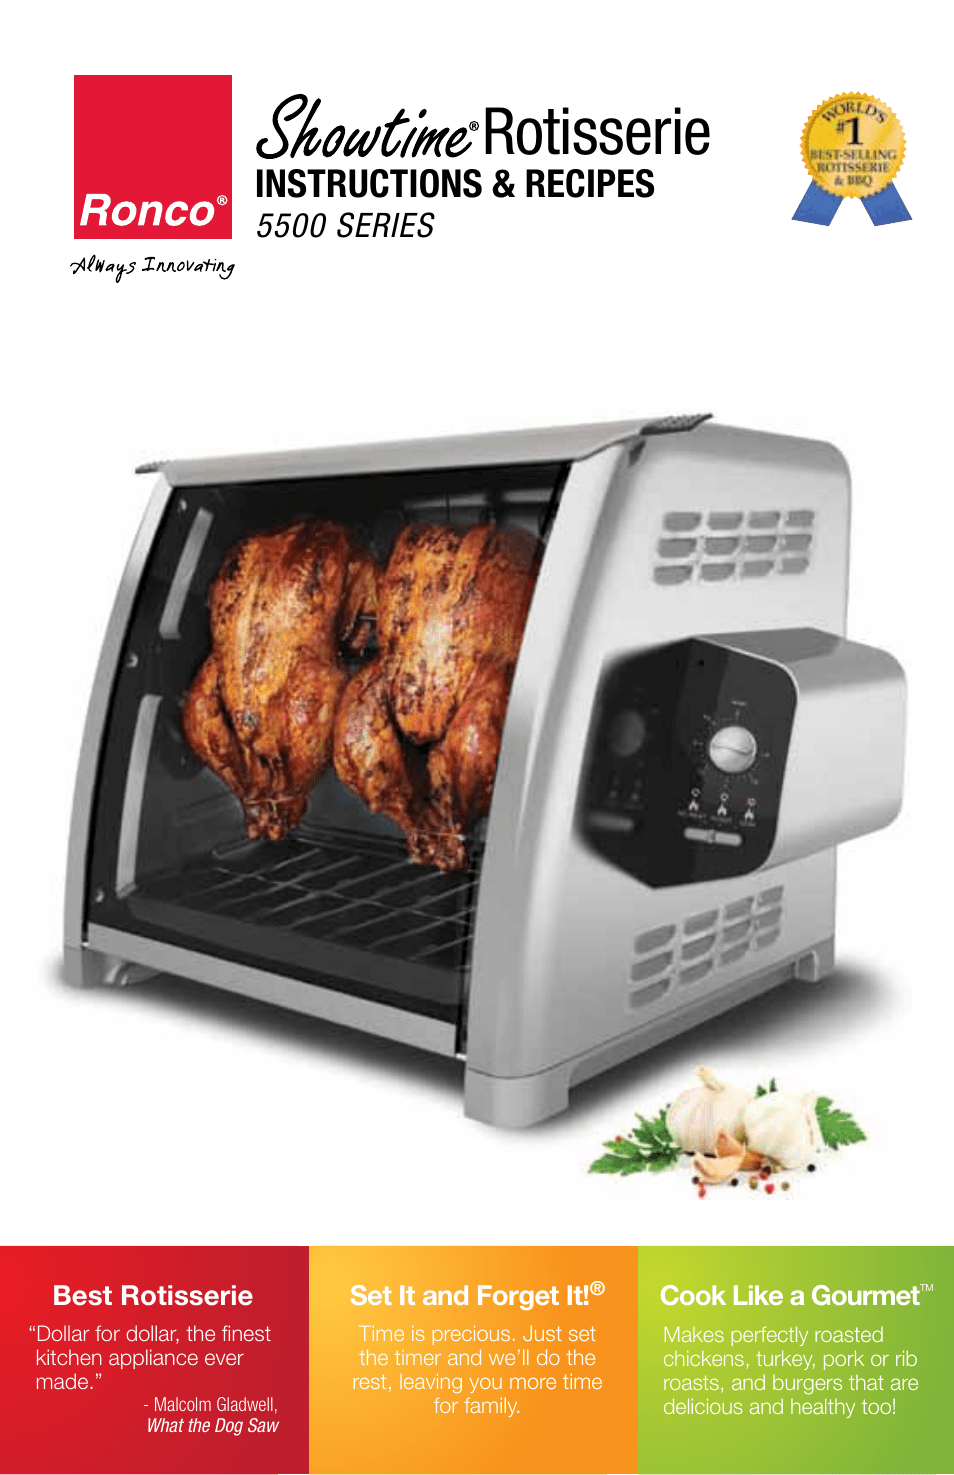 Ronco 5500 Series Stainless Rotisserie Oven User Manual